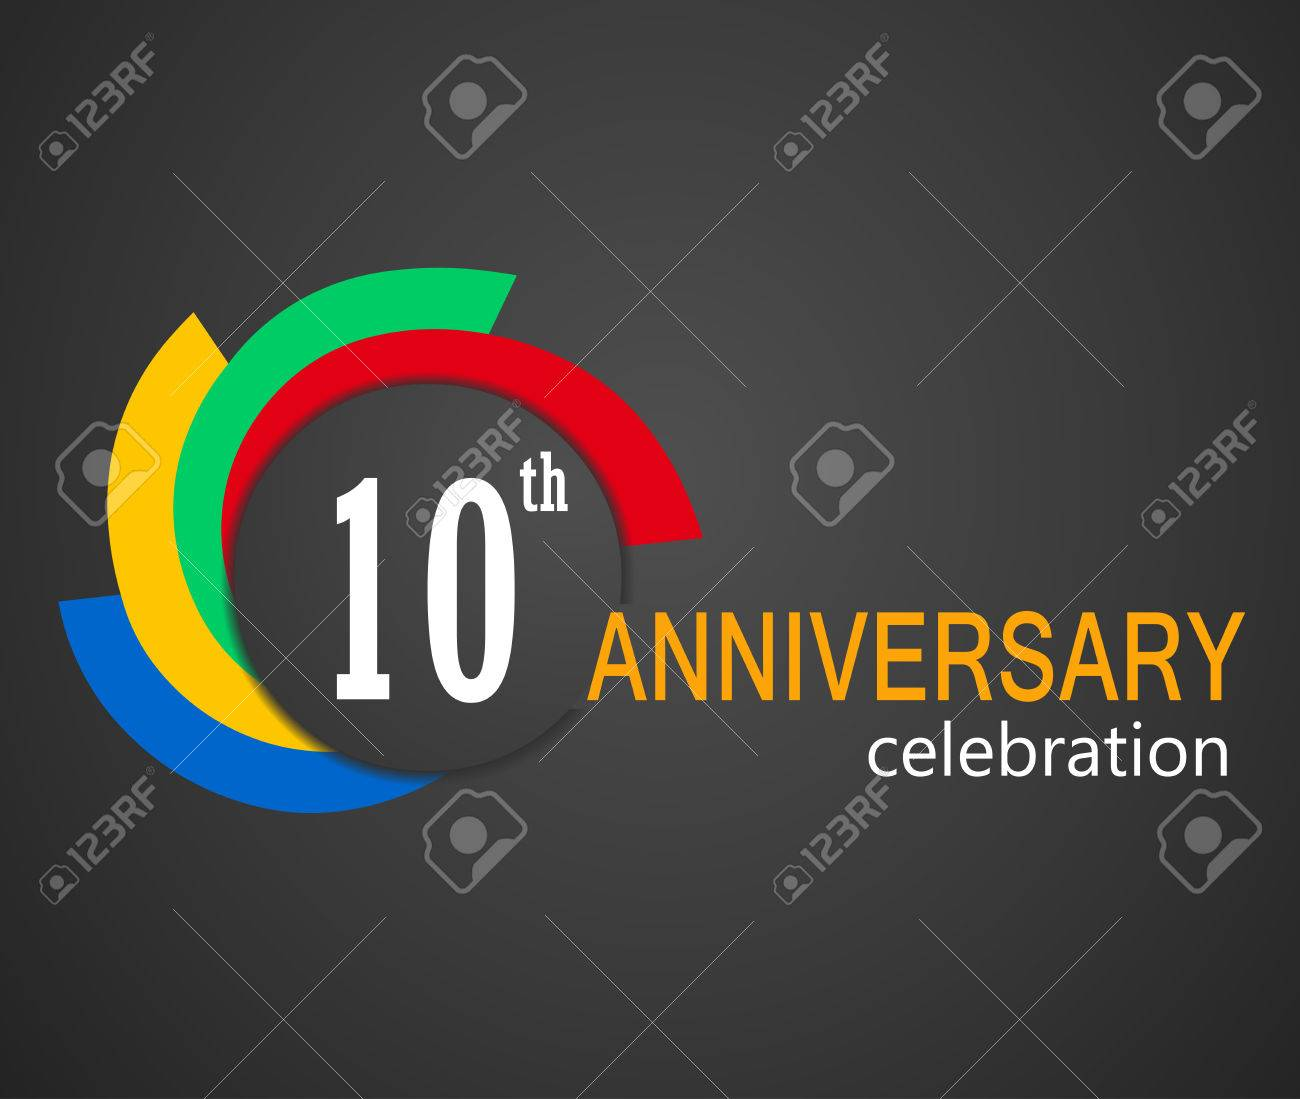 10th Anniversary celebration background, 10 years anniversary card illustration - vector eps10 - 52218292